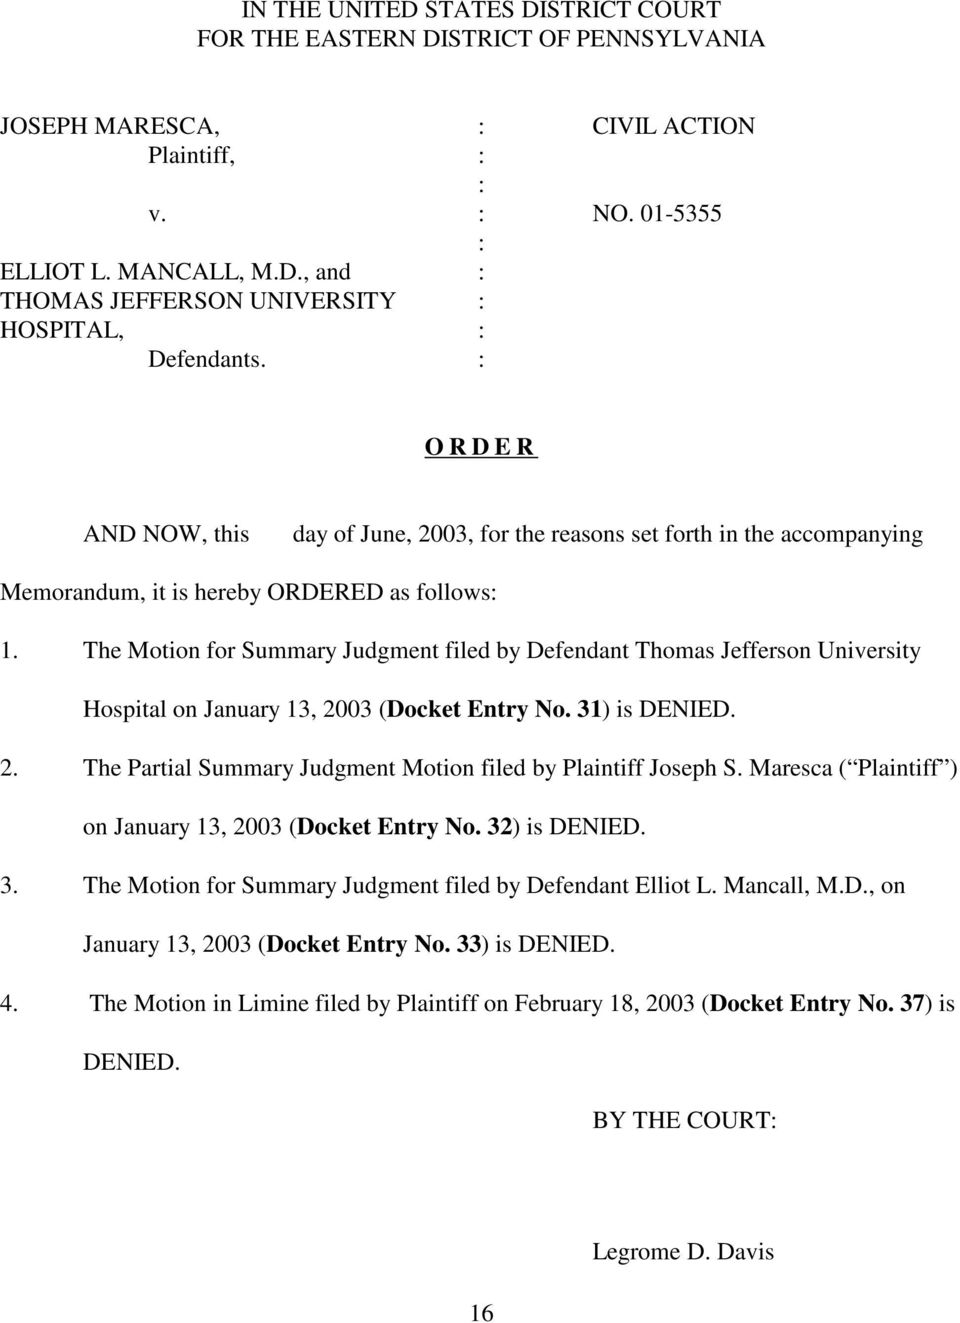 The Motion for Summary Judgment filed by Defendant Thomas Jefferson University Hospital on January 13, 2003 (Docket Entry No. 31) is DENIED. 2. The Partial Summary Judgment Motion filed by Plaintiff Joseph S.